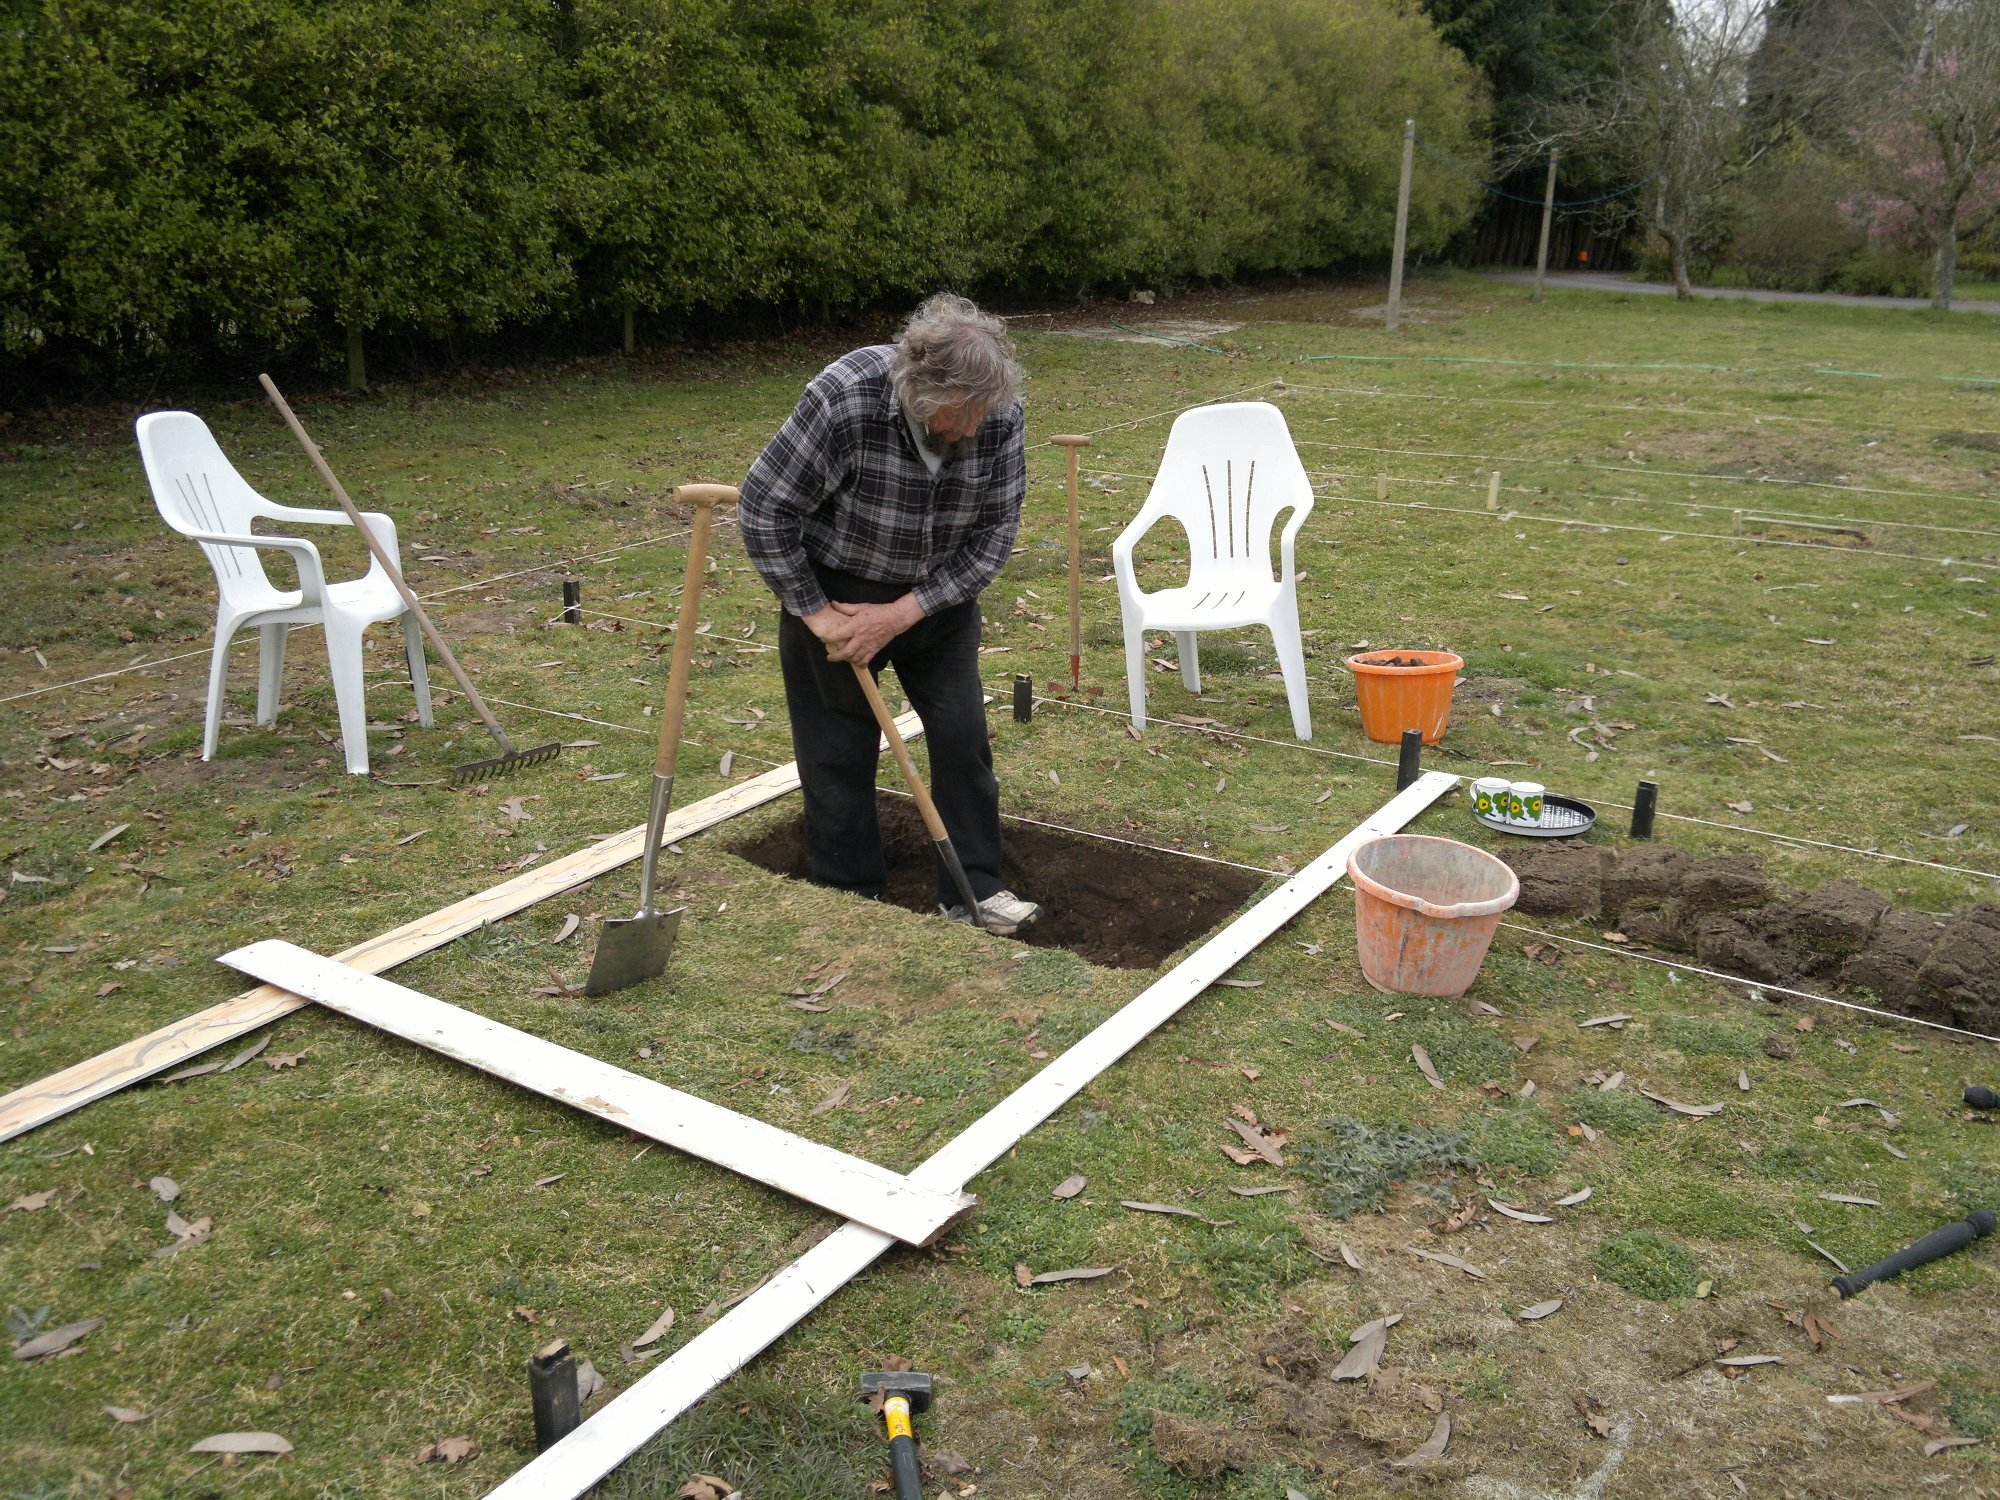 Trenching part 3: forking over the subsoil - with dad's help